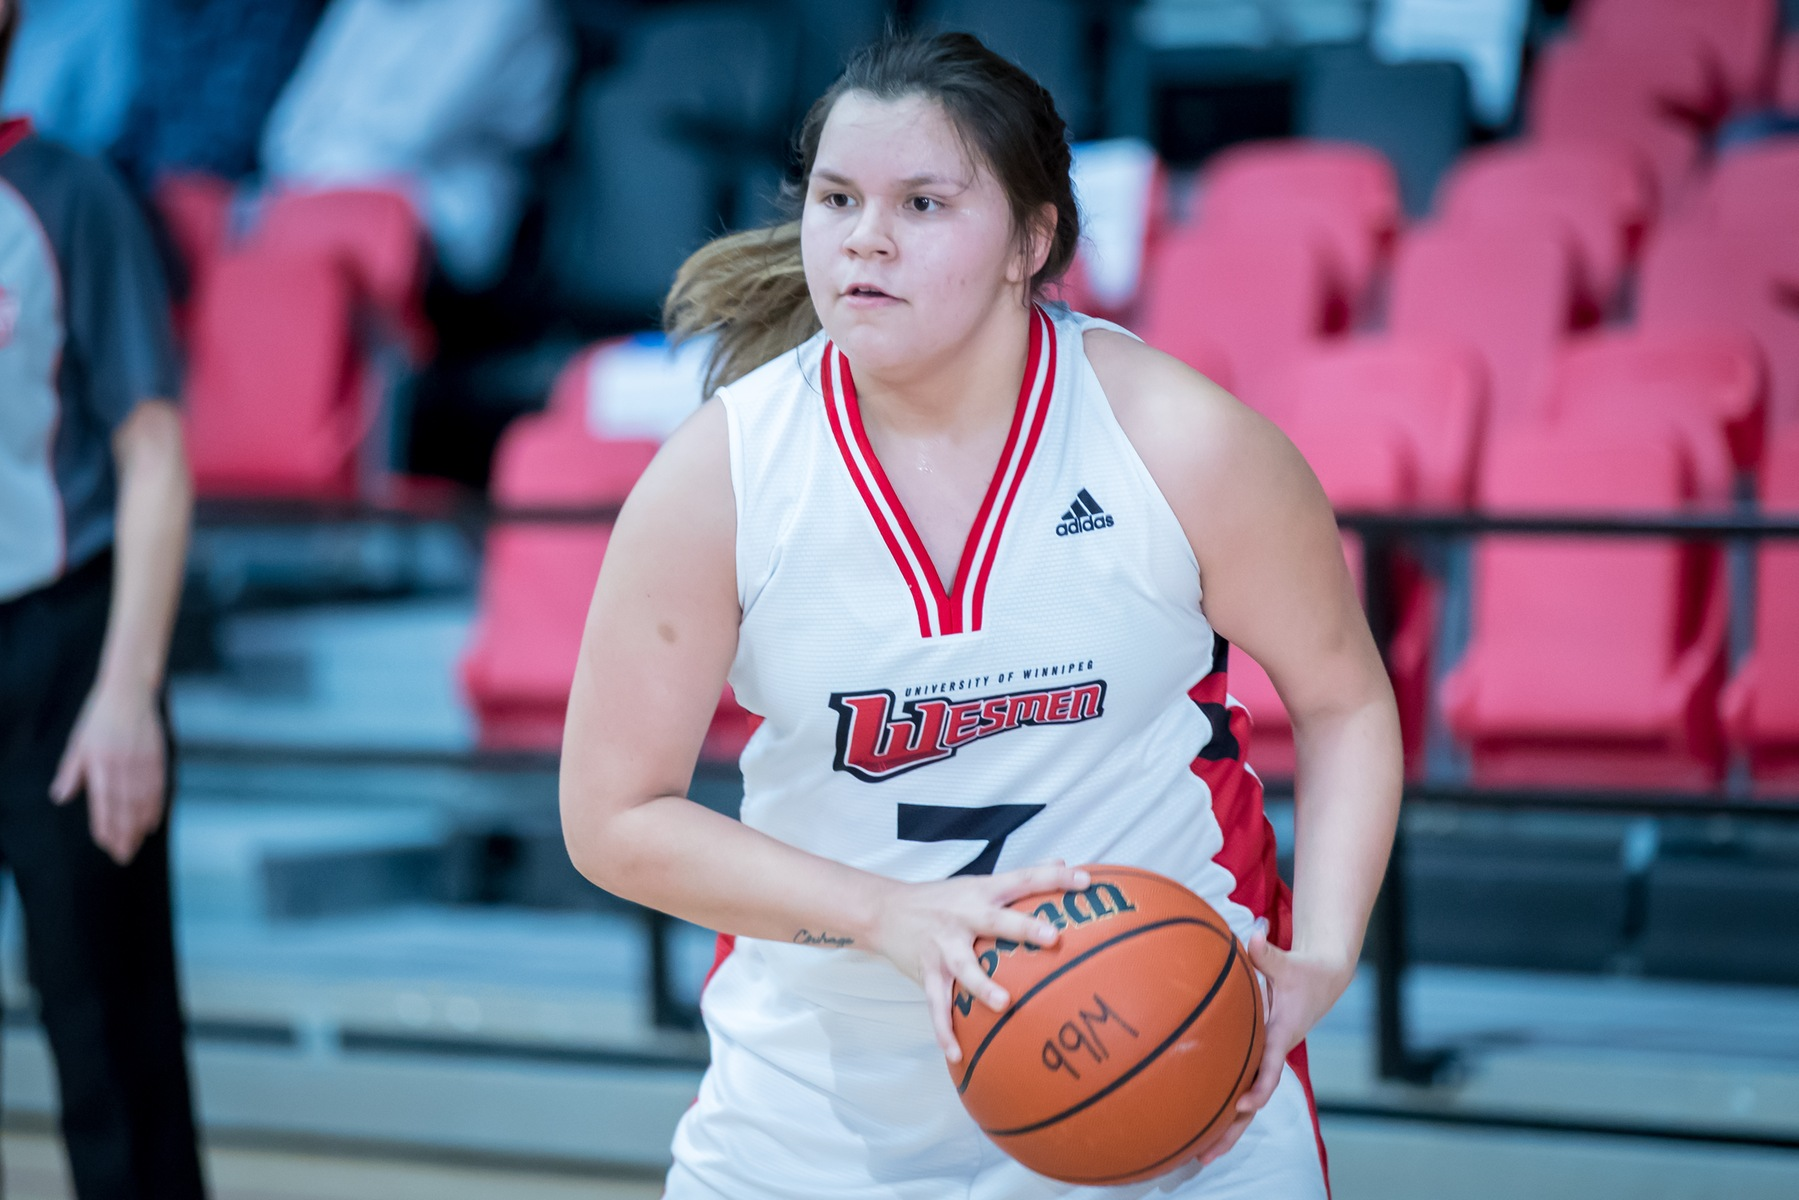 Robyn Boulanger hit four three-pointers off the bench and finished with 12 points Friday night in Regina. (Kelly Morton photo)